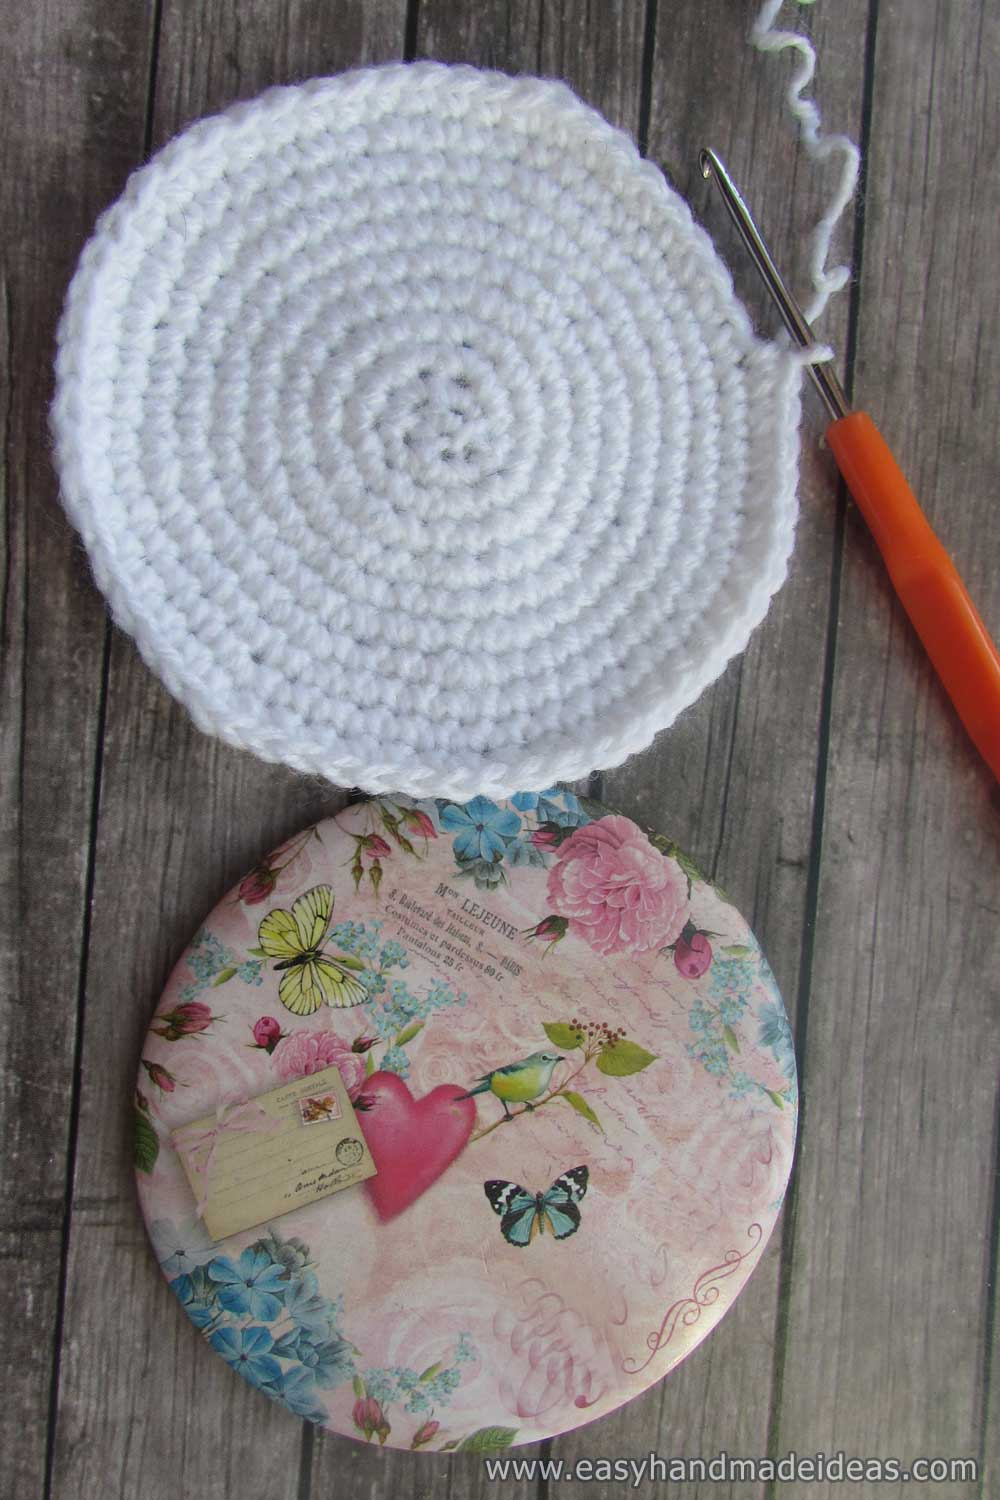 Crocheted Circle of White Thread